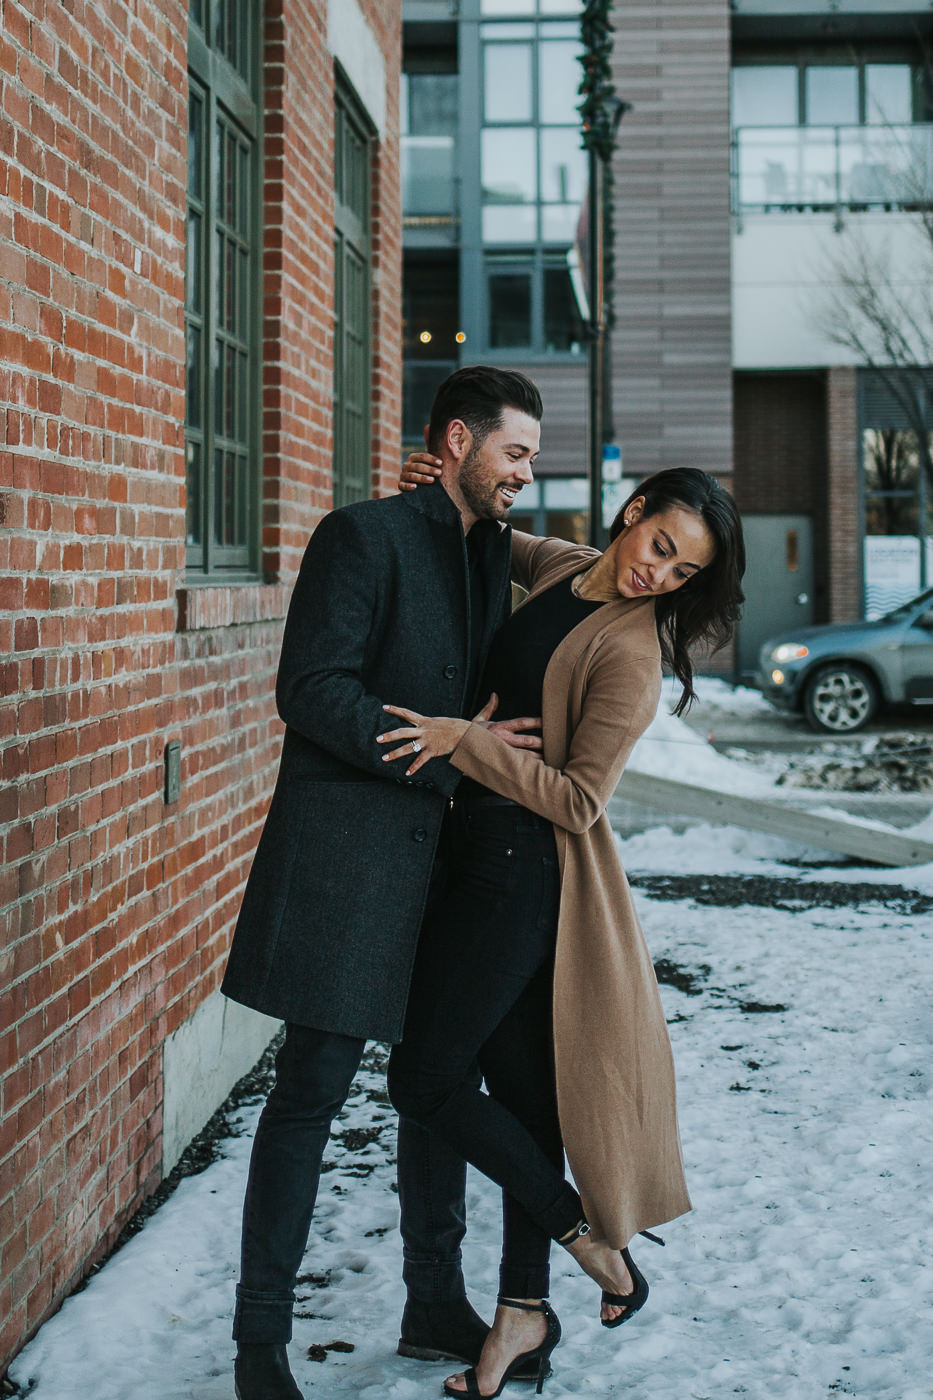 Couple having fun in the snow